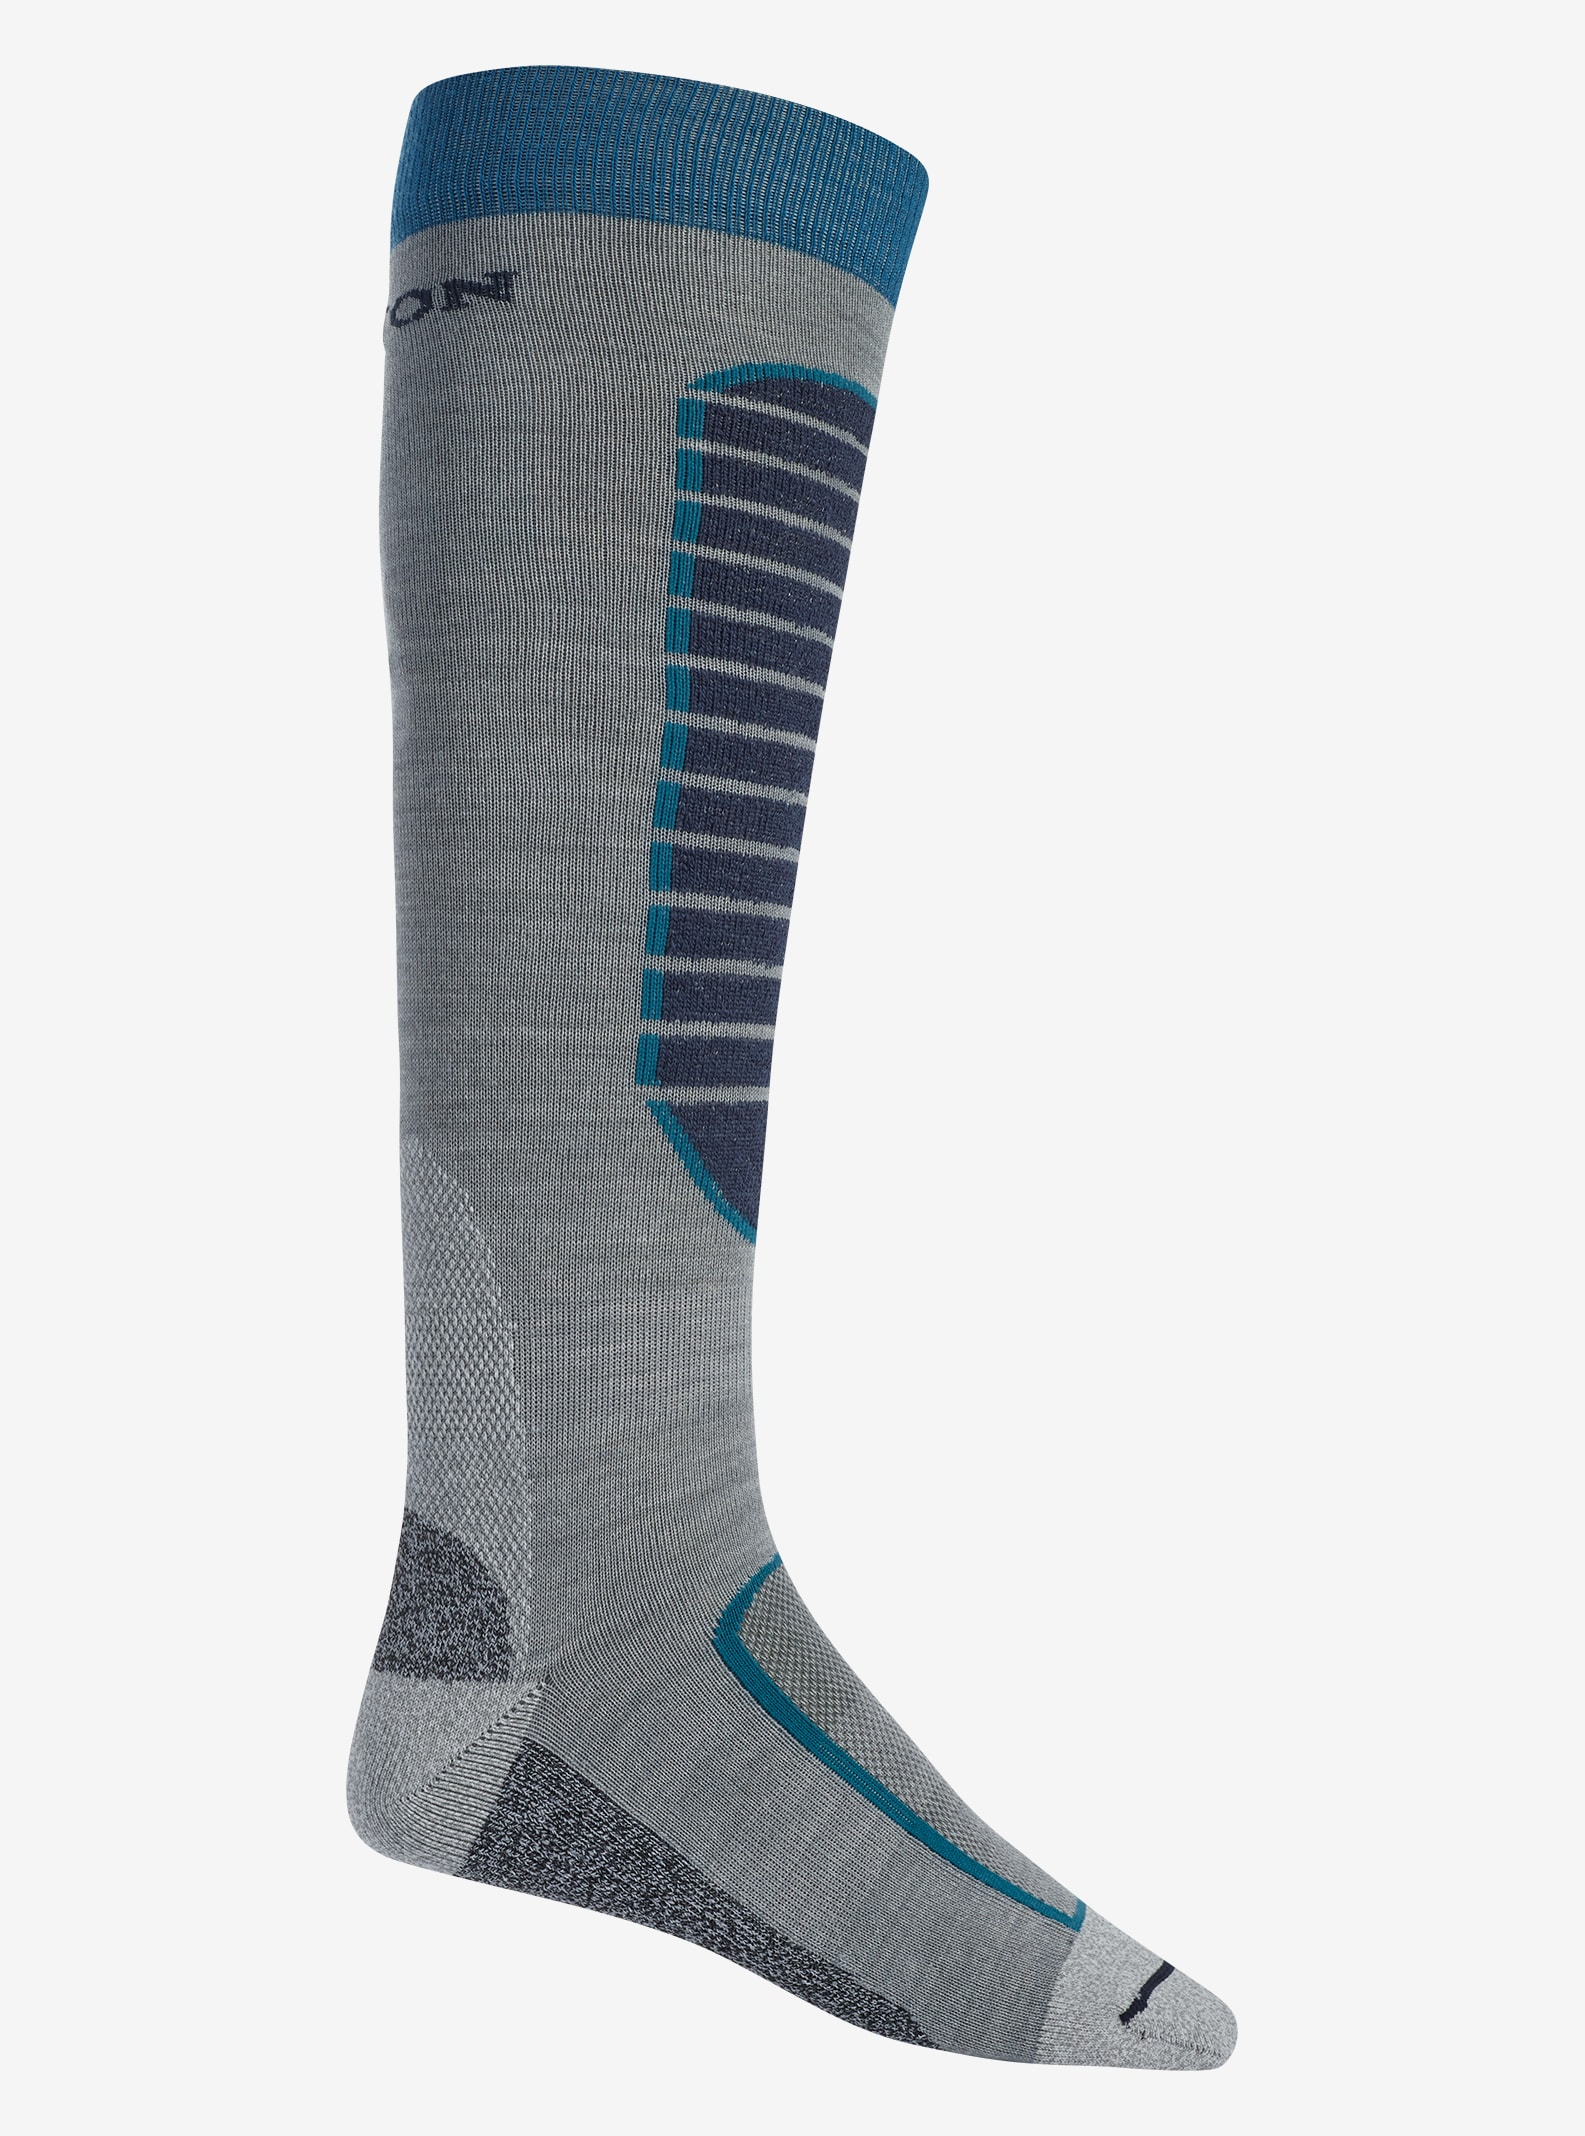 Men's Burton Merino Phase Sock shown in Monument Heather